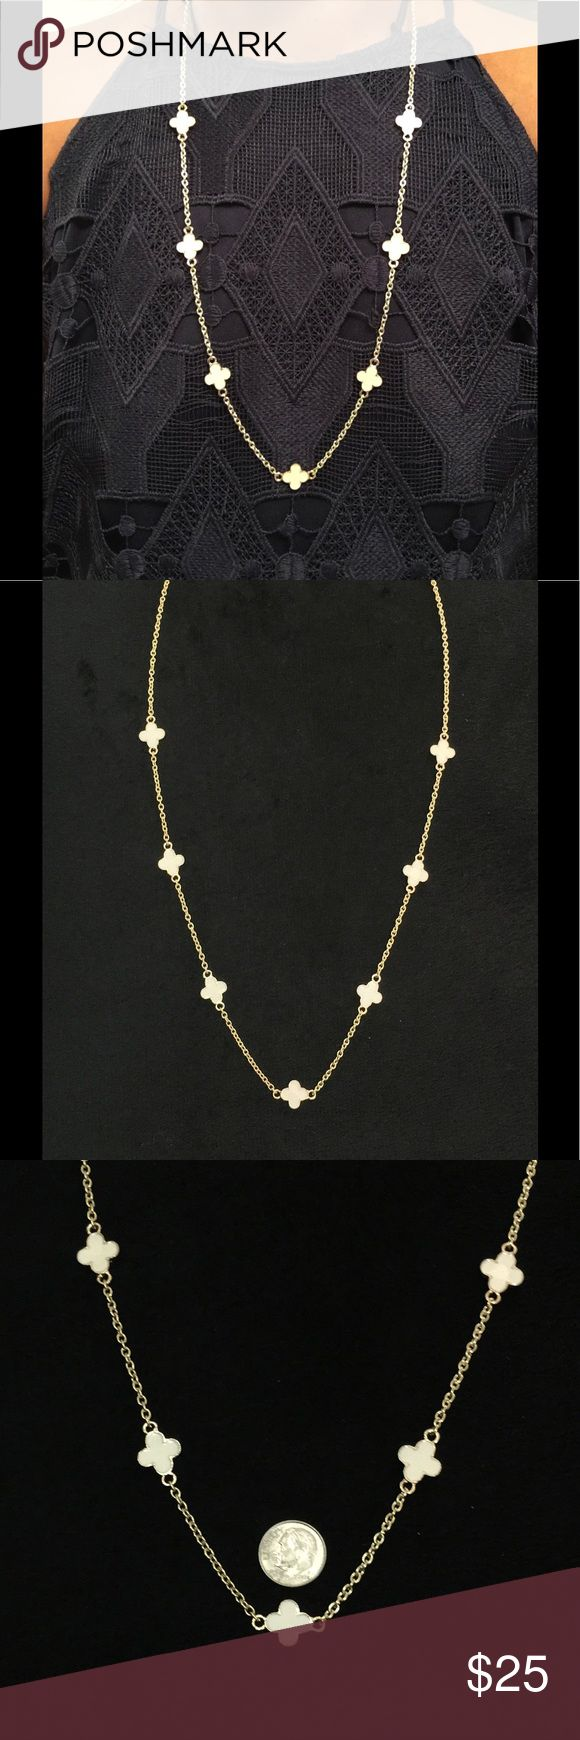 """Van Cleef & Arpels Inspired 4 Leaf Clover Necklace Handmade.   Van Cleef & Arpels Inspired necklace with 7 four leaf clover charms in ivory and framed in gold..  18""""-20"""" drop or a total length of 46""""-40"""". bargainzgalore Jewelry Necklaces"""